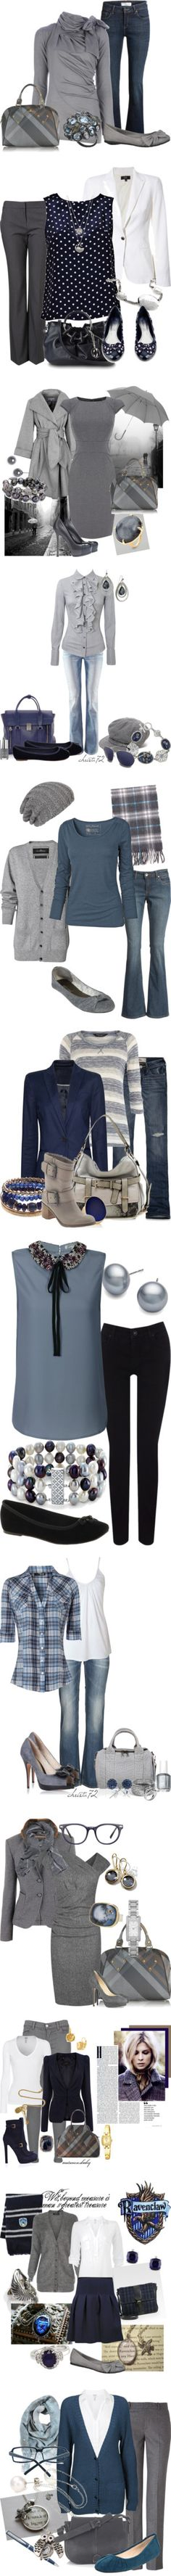 blue and gray by meganpearl on Polyvore featuring Vivienne Westwood, Alexis Bittar, ballet flats, bows, grey, gray, rings, flared jeans, AX Paris and Kenneth Cole